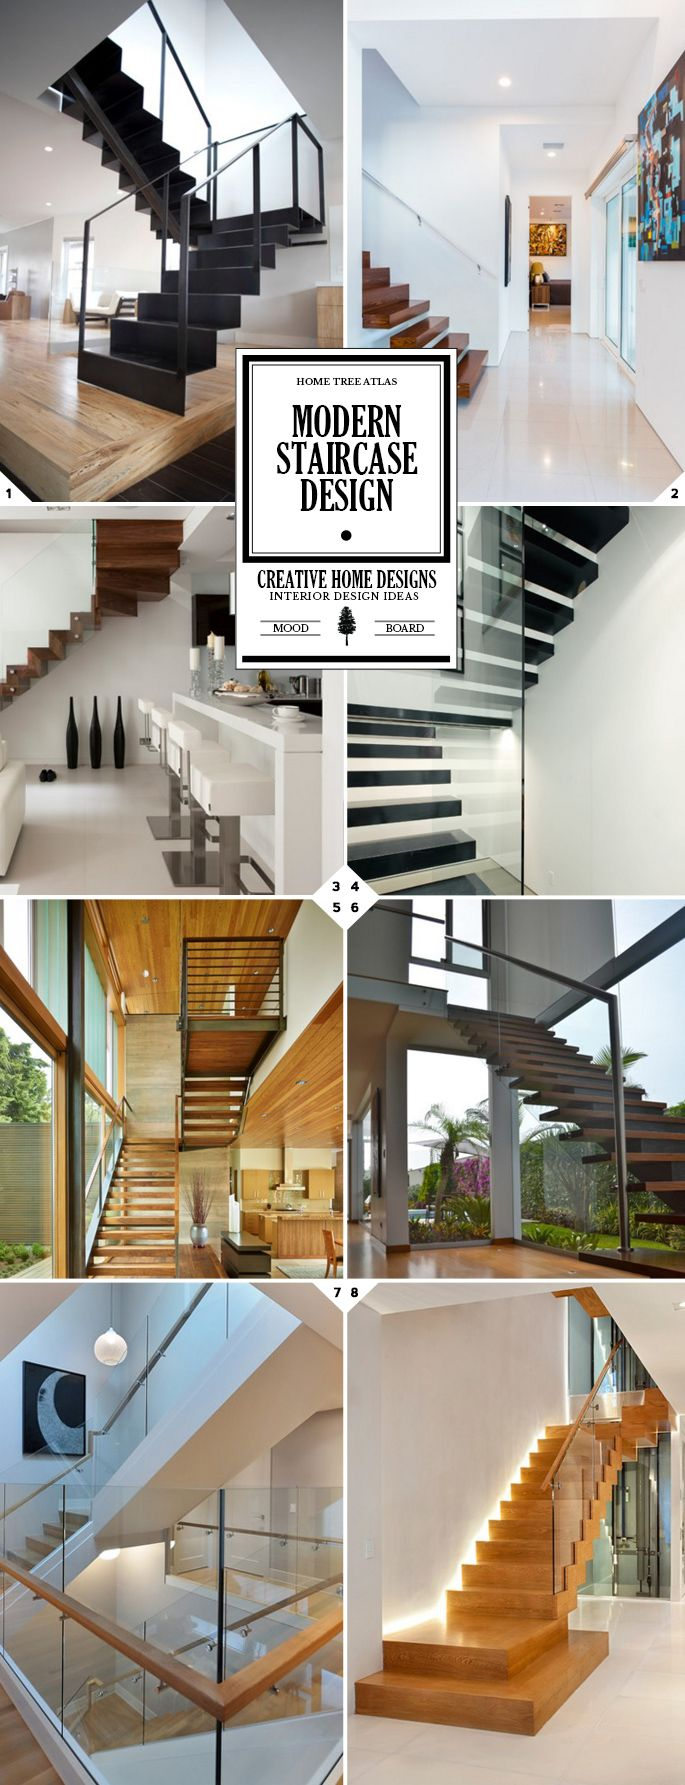 Captivating Modern Staircase Ideas And Designs